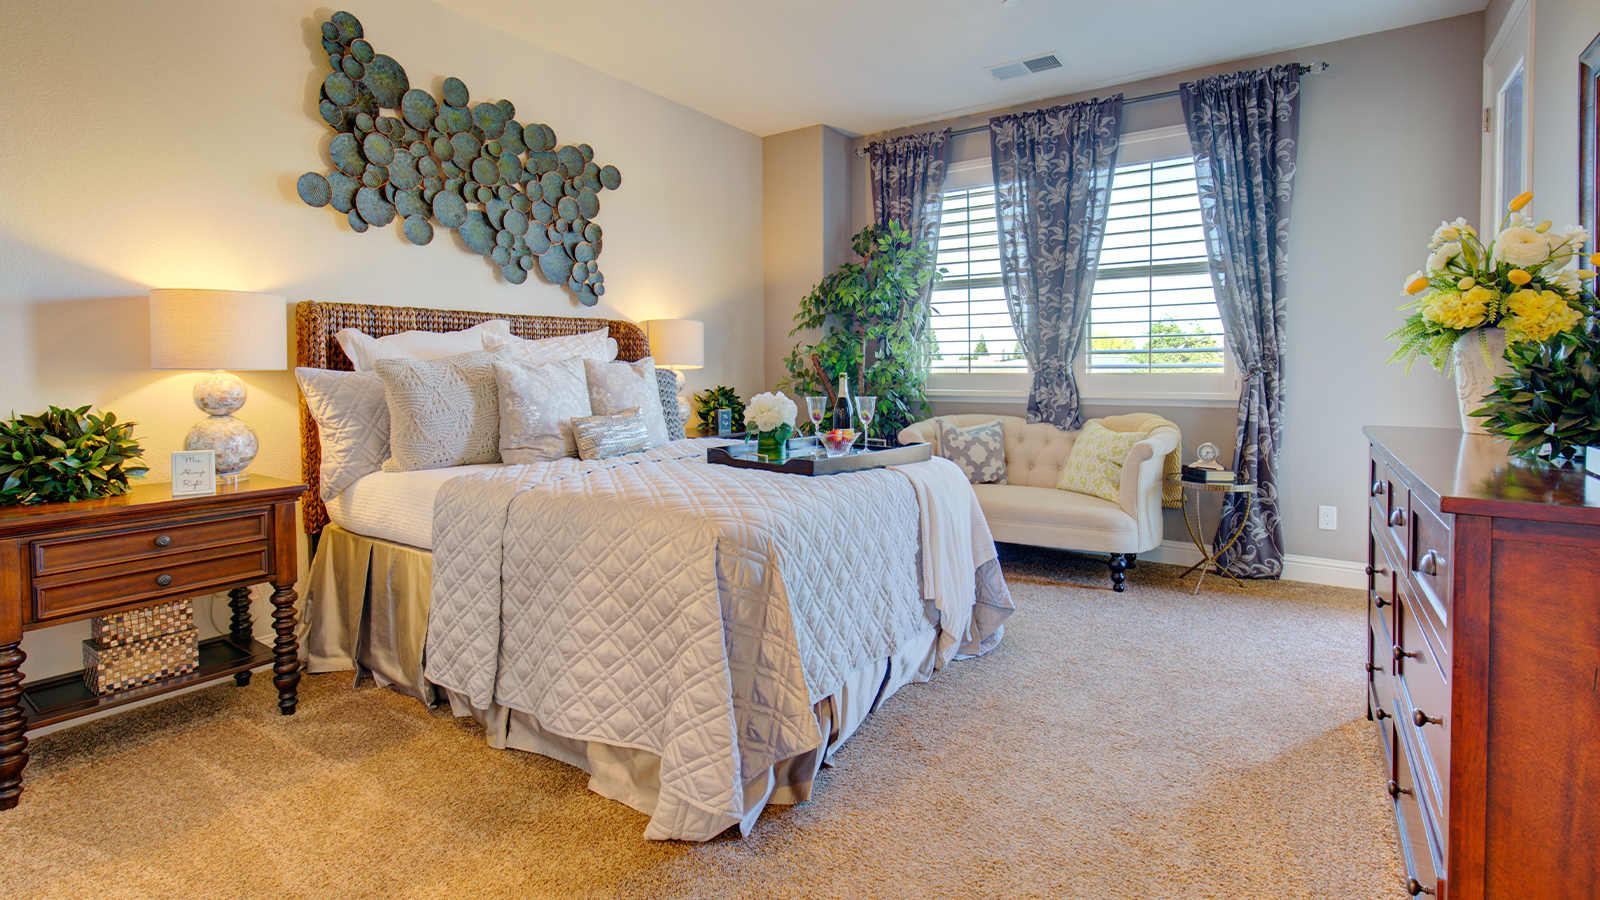 An owner's suite, shown staged with greenery and cool blue and green decor. There are wide fauxwood blinds on the window and lush printed curtains.